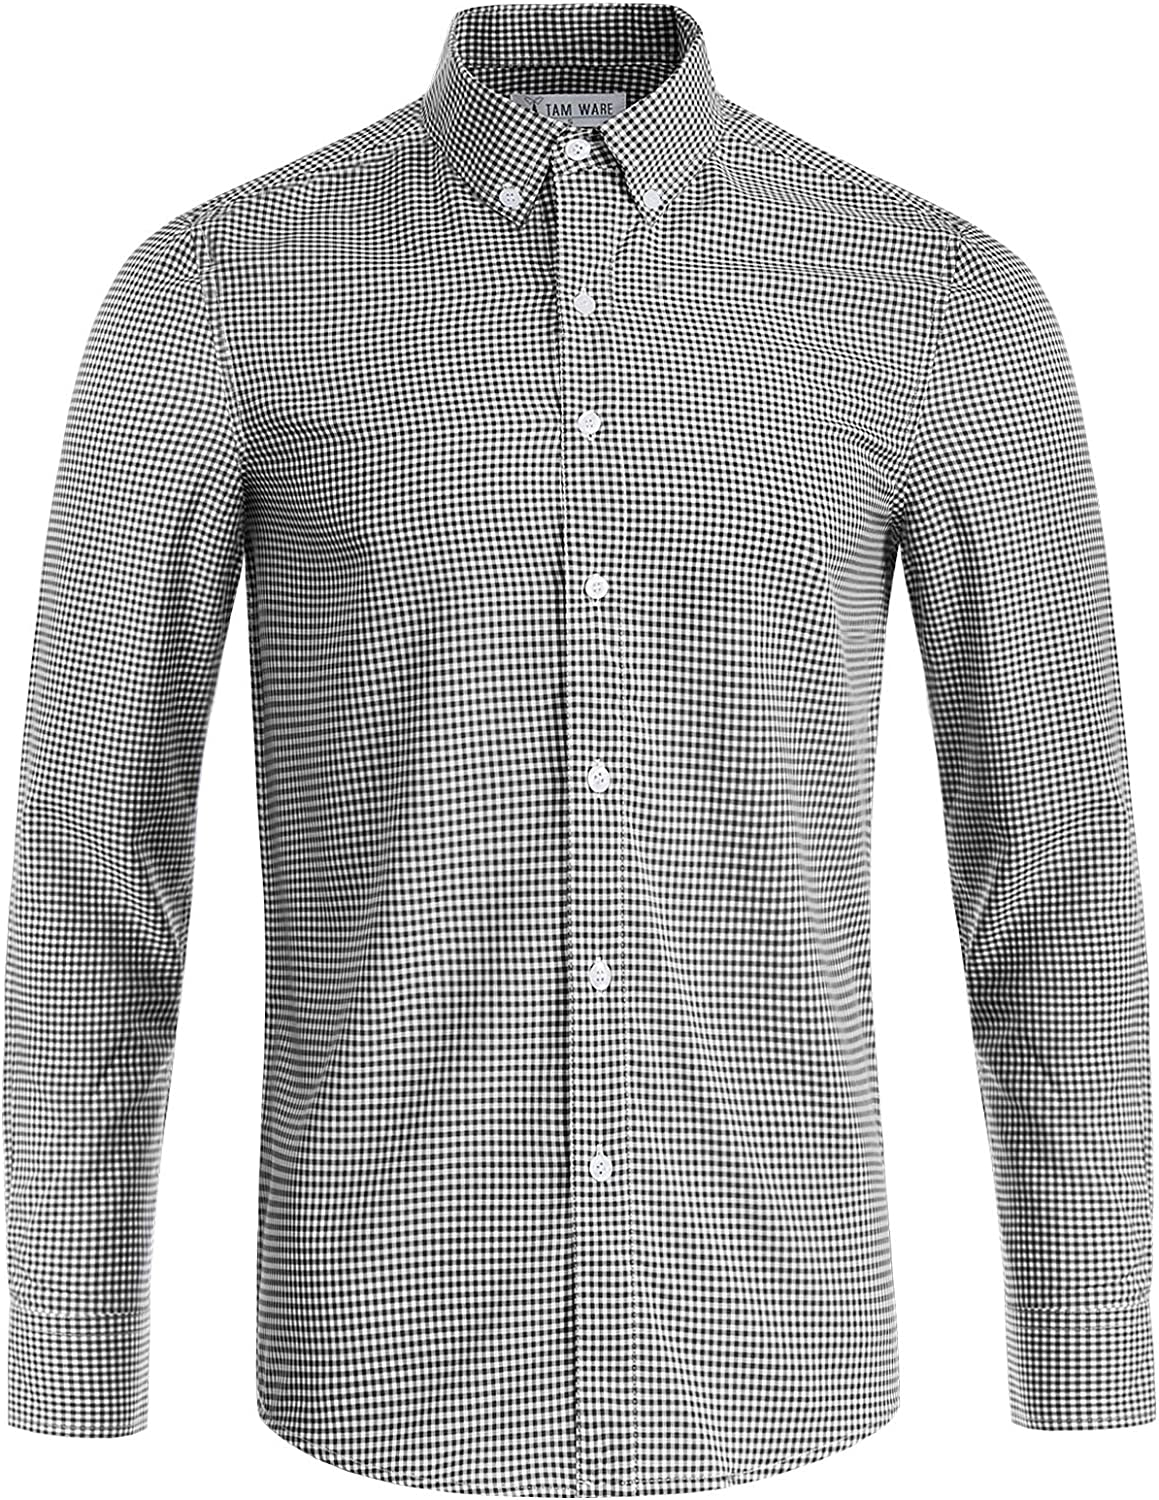 TAM WARE Men's Casual Checkered Long Sleeve Winkle-Free Button Down Dress Shirt